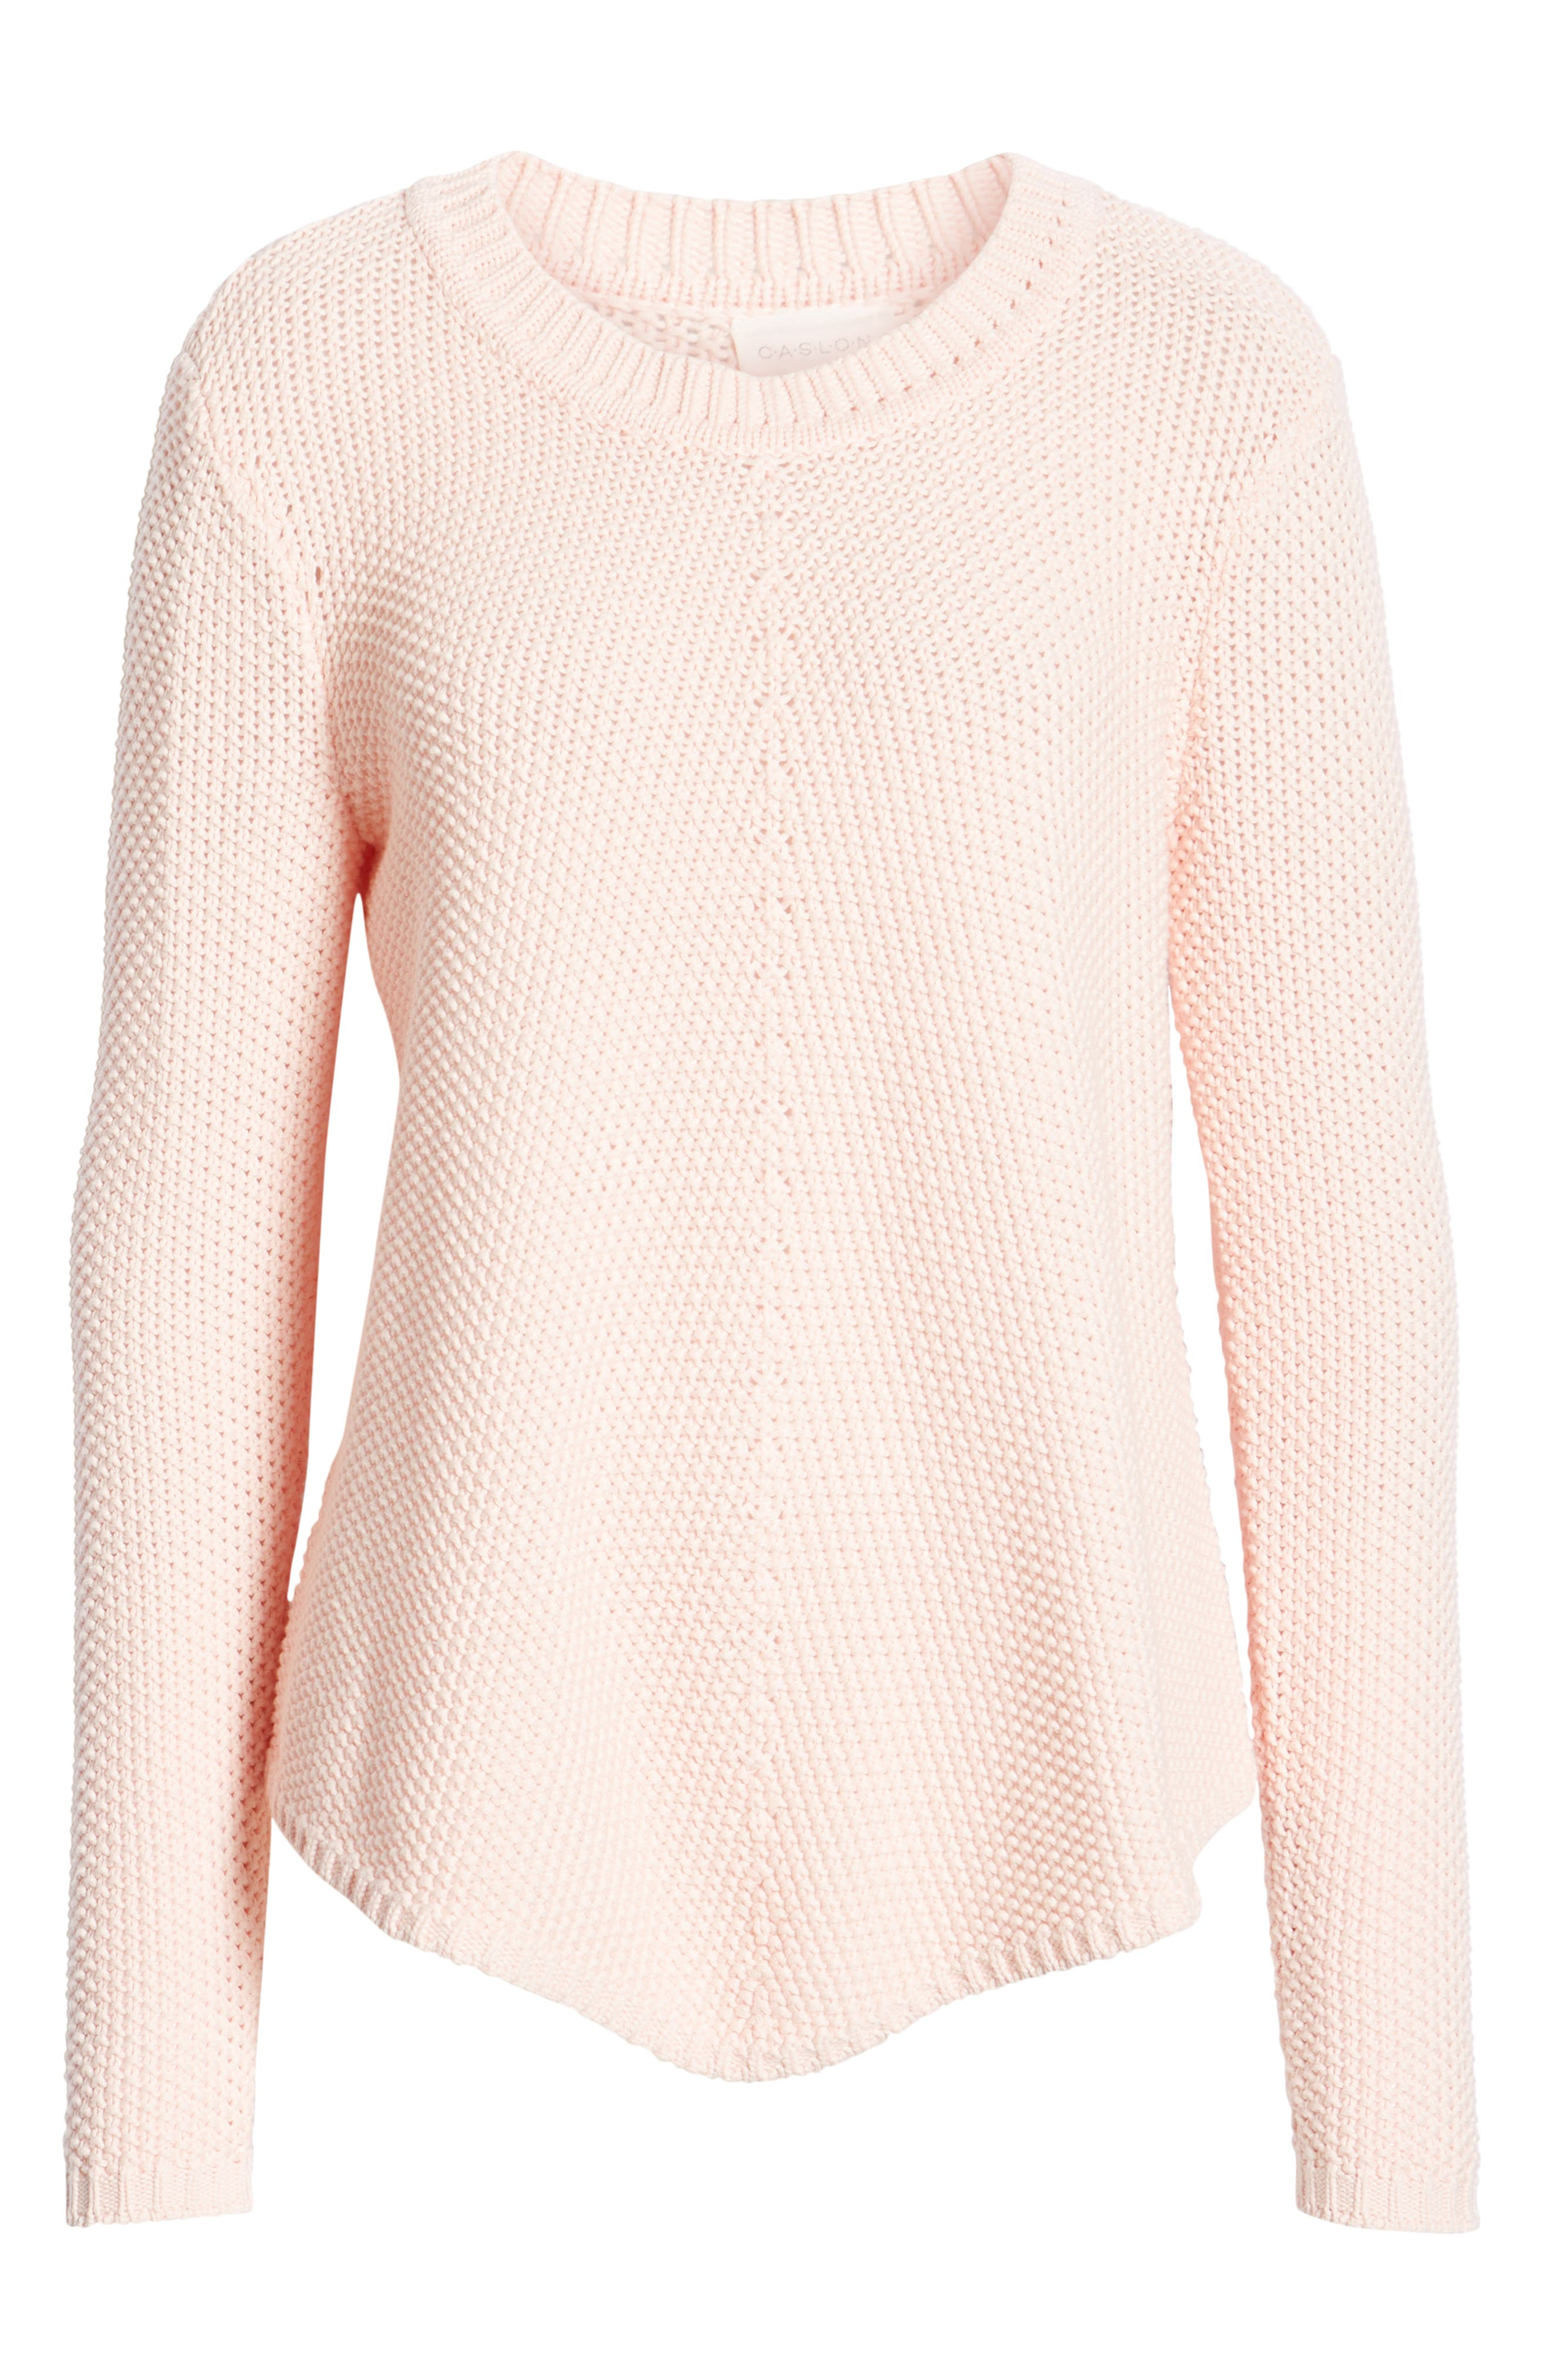 CASLON<SUP>®</SUP>, Stitch Stripe Sweater, Alternate thumbnail 6, color, PINK CHINTZ